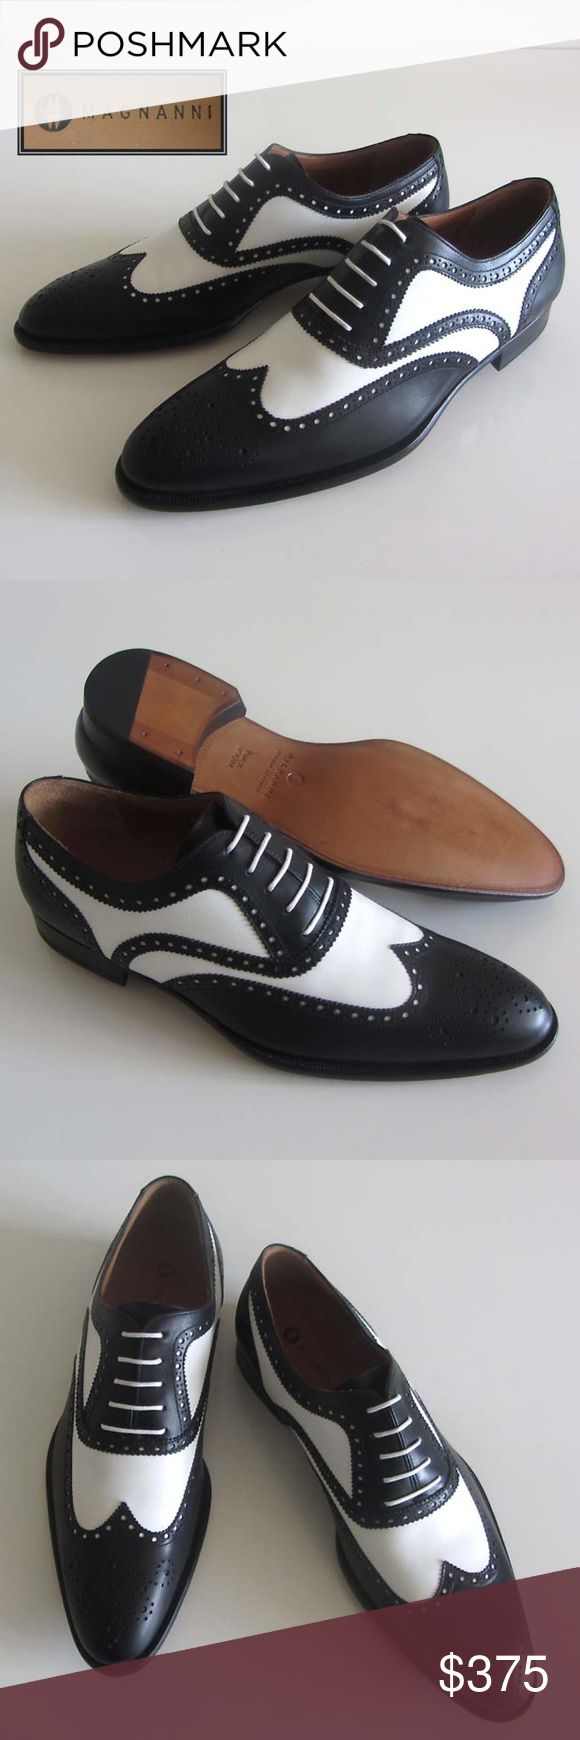 new MAGNANNI wingtip brogue spectator shoes 8.5 M Men's black and white leat...